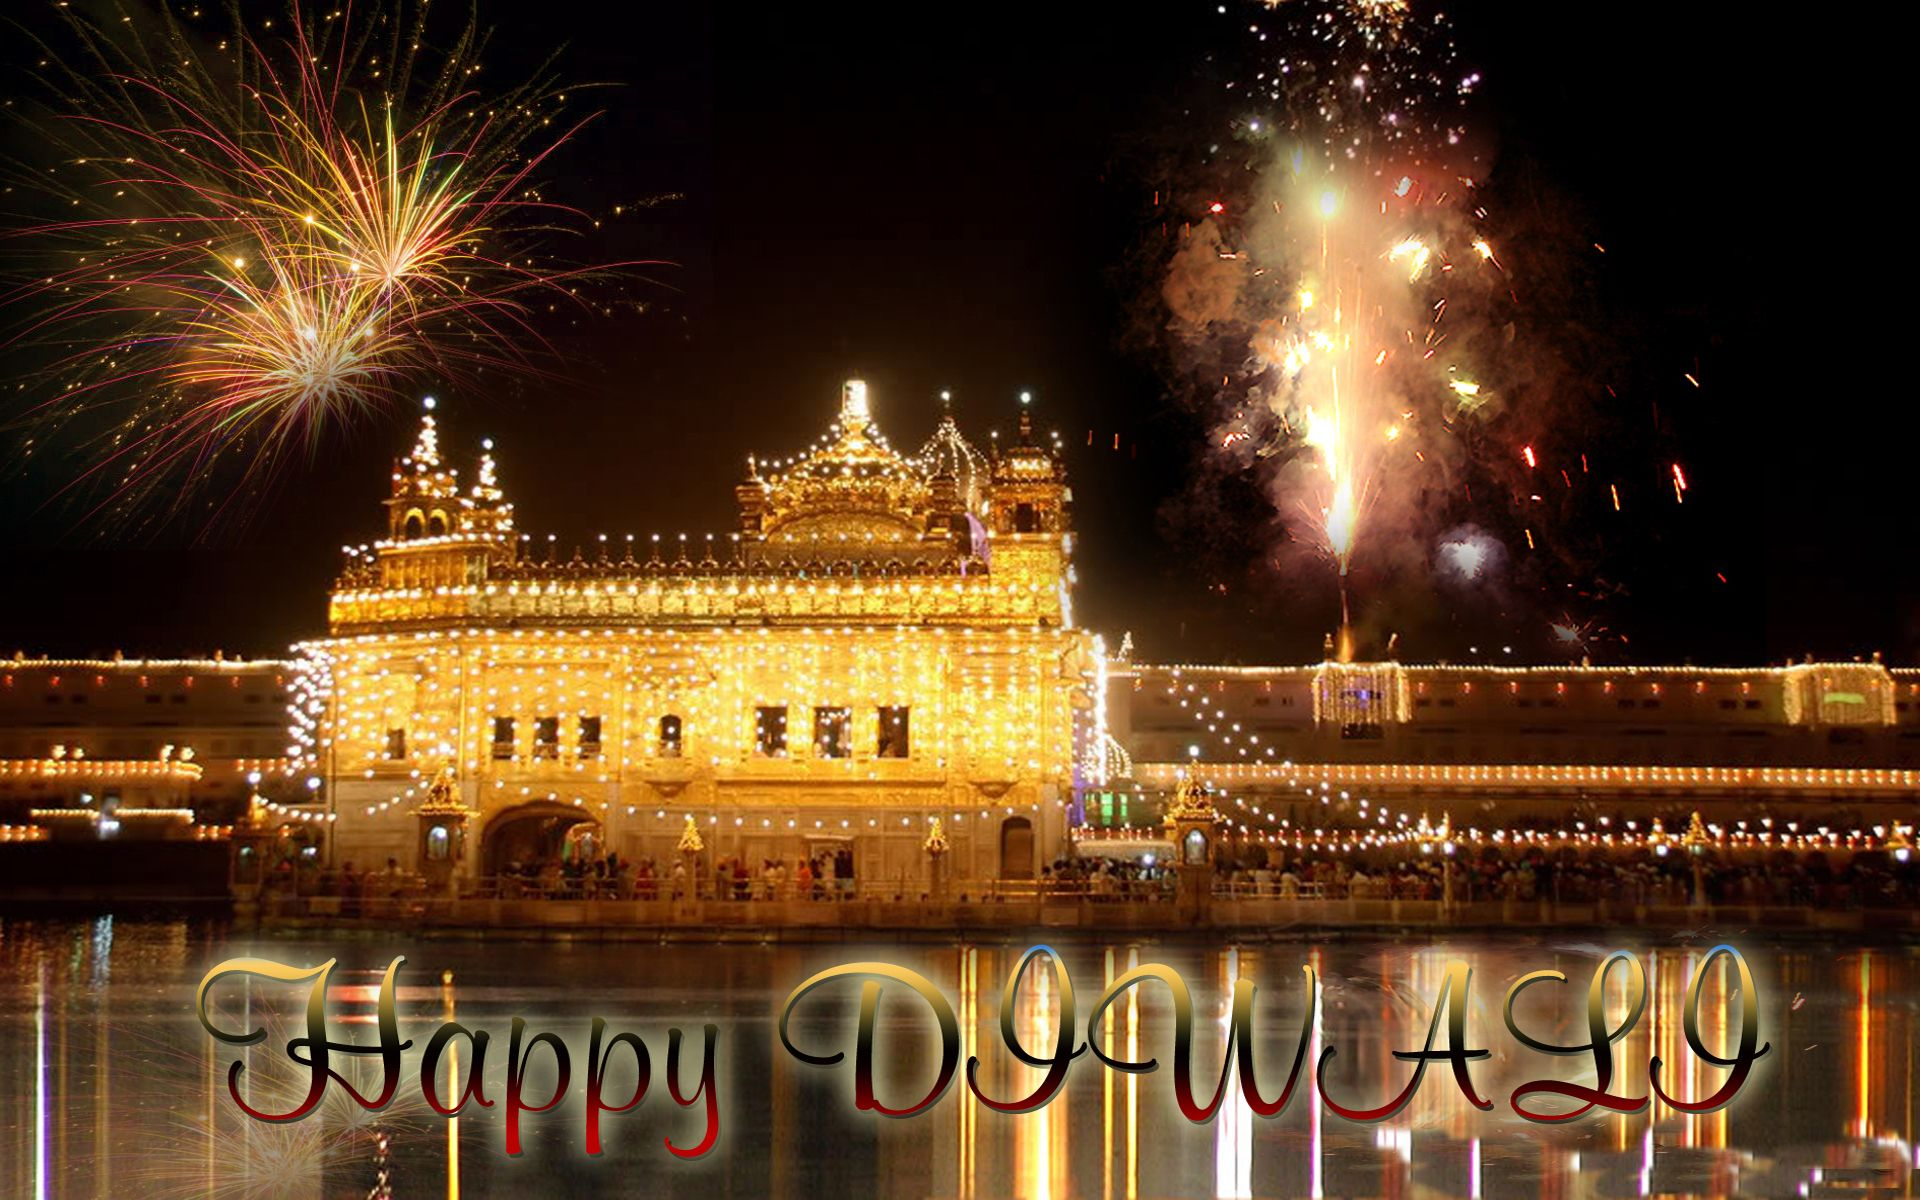 diwali tour diwali festival wishes hd wallpapers Happy